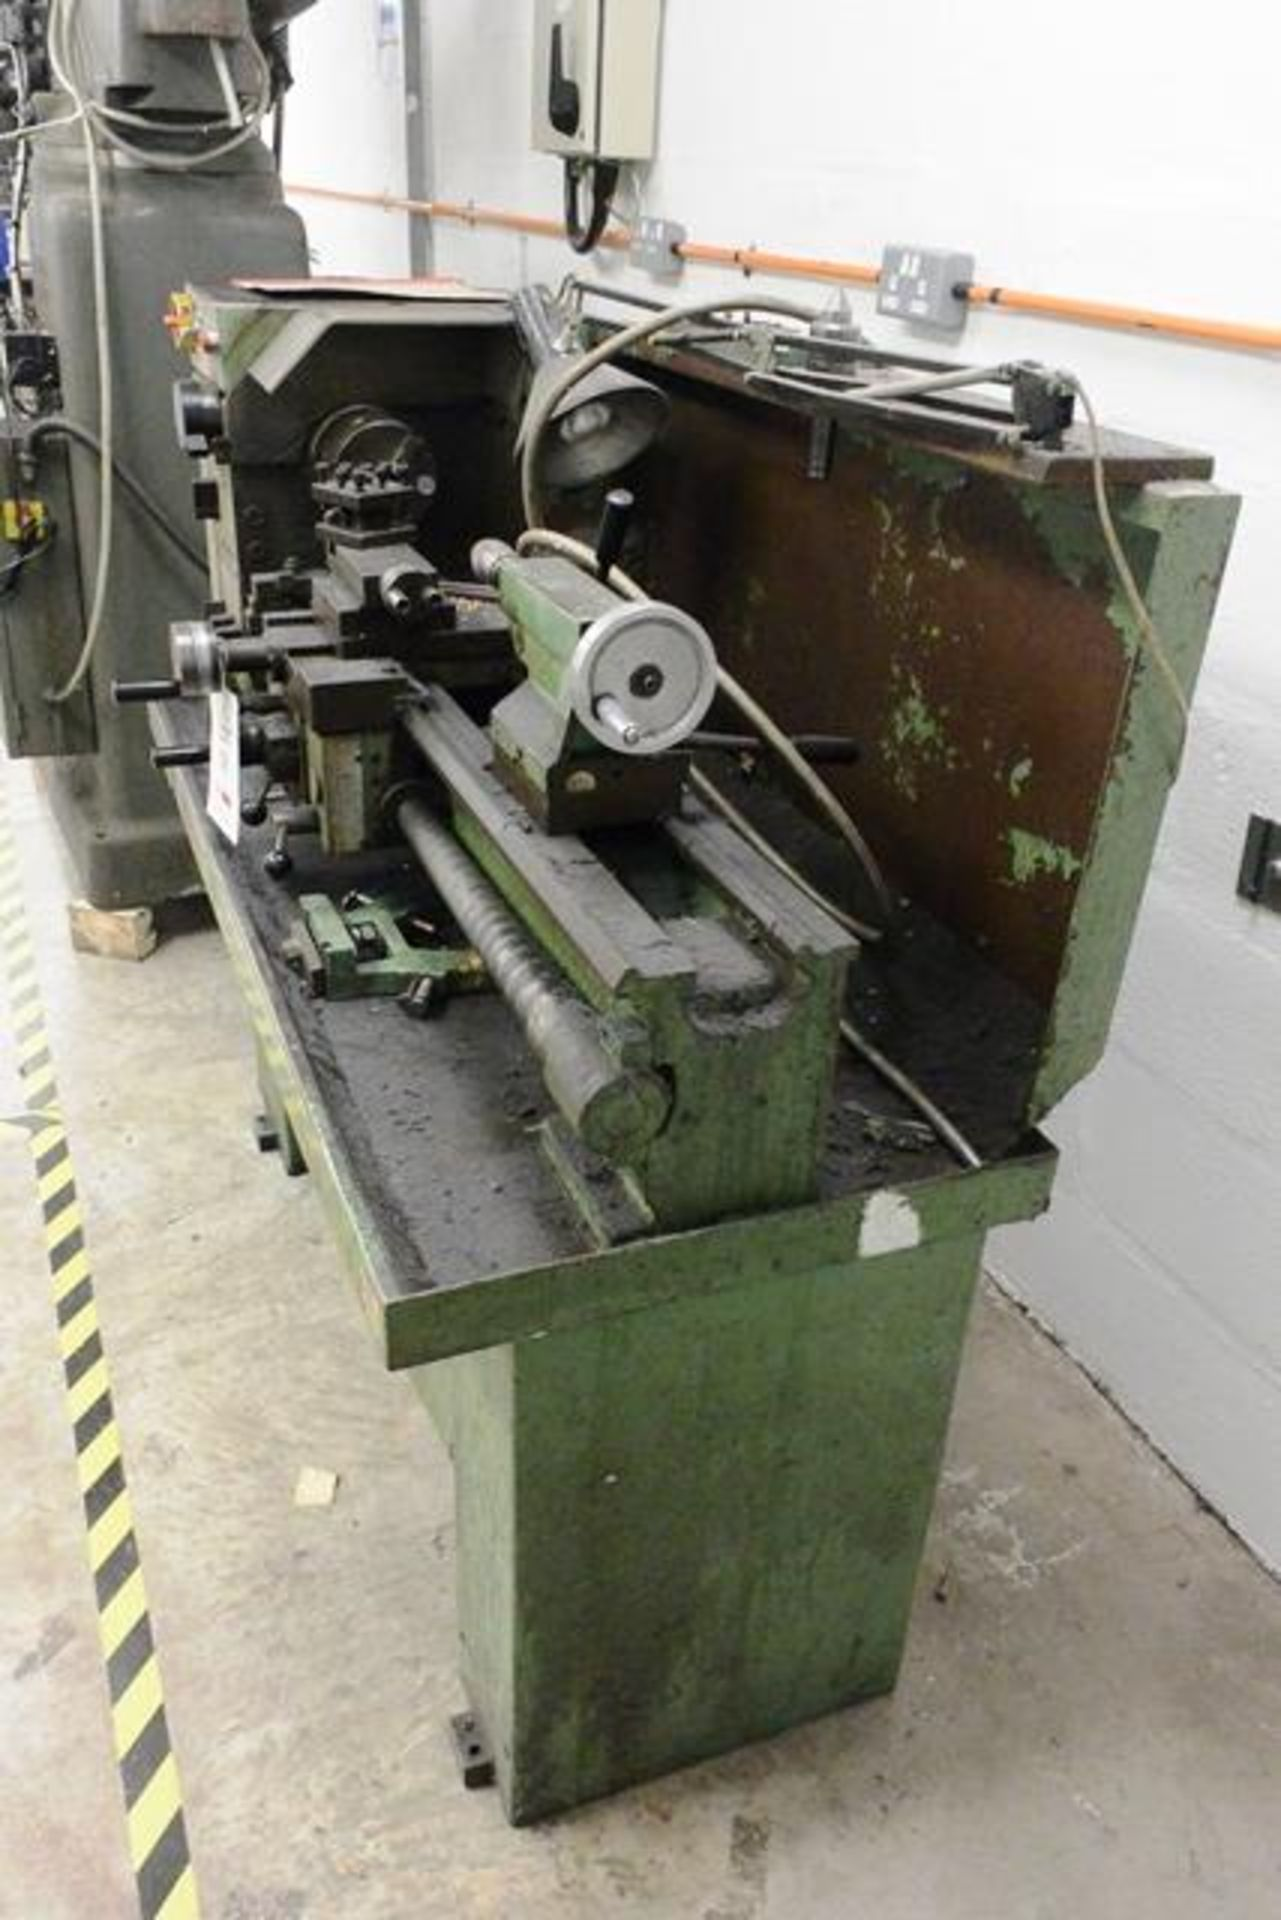 Boxford Industrial 11.30, centre lathe, model: Engineer, distance between centres 770mm, 3 jaw chuck - Image 4 of 4